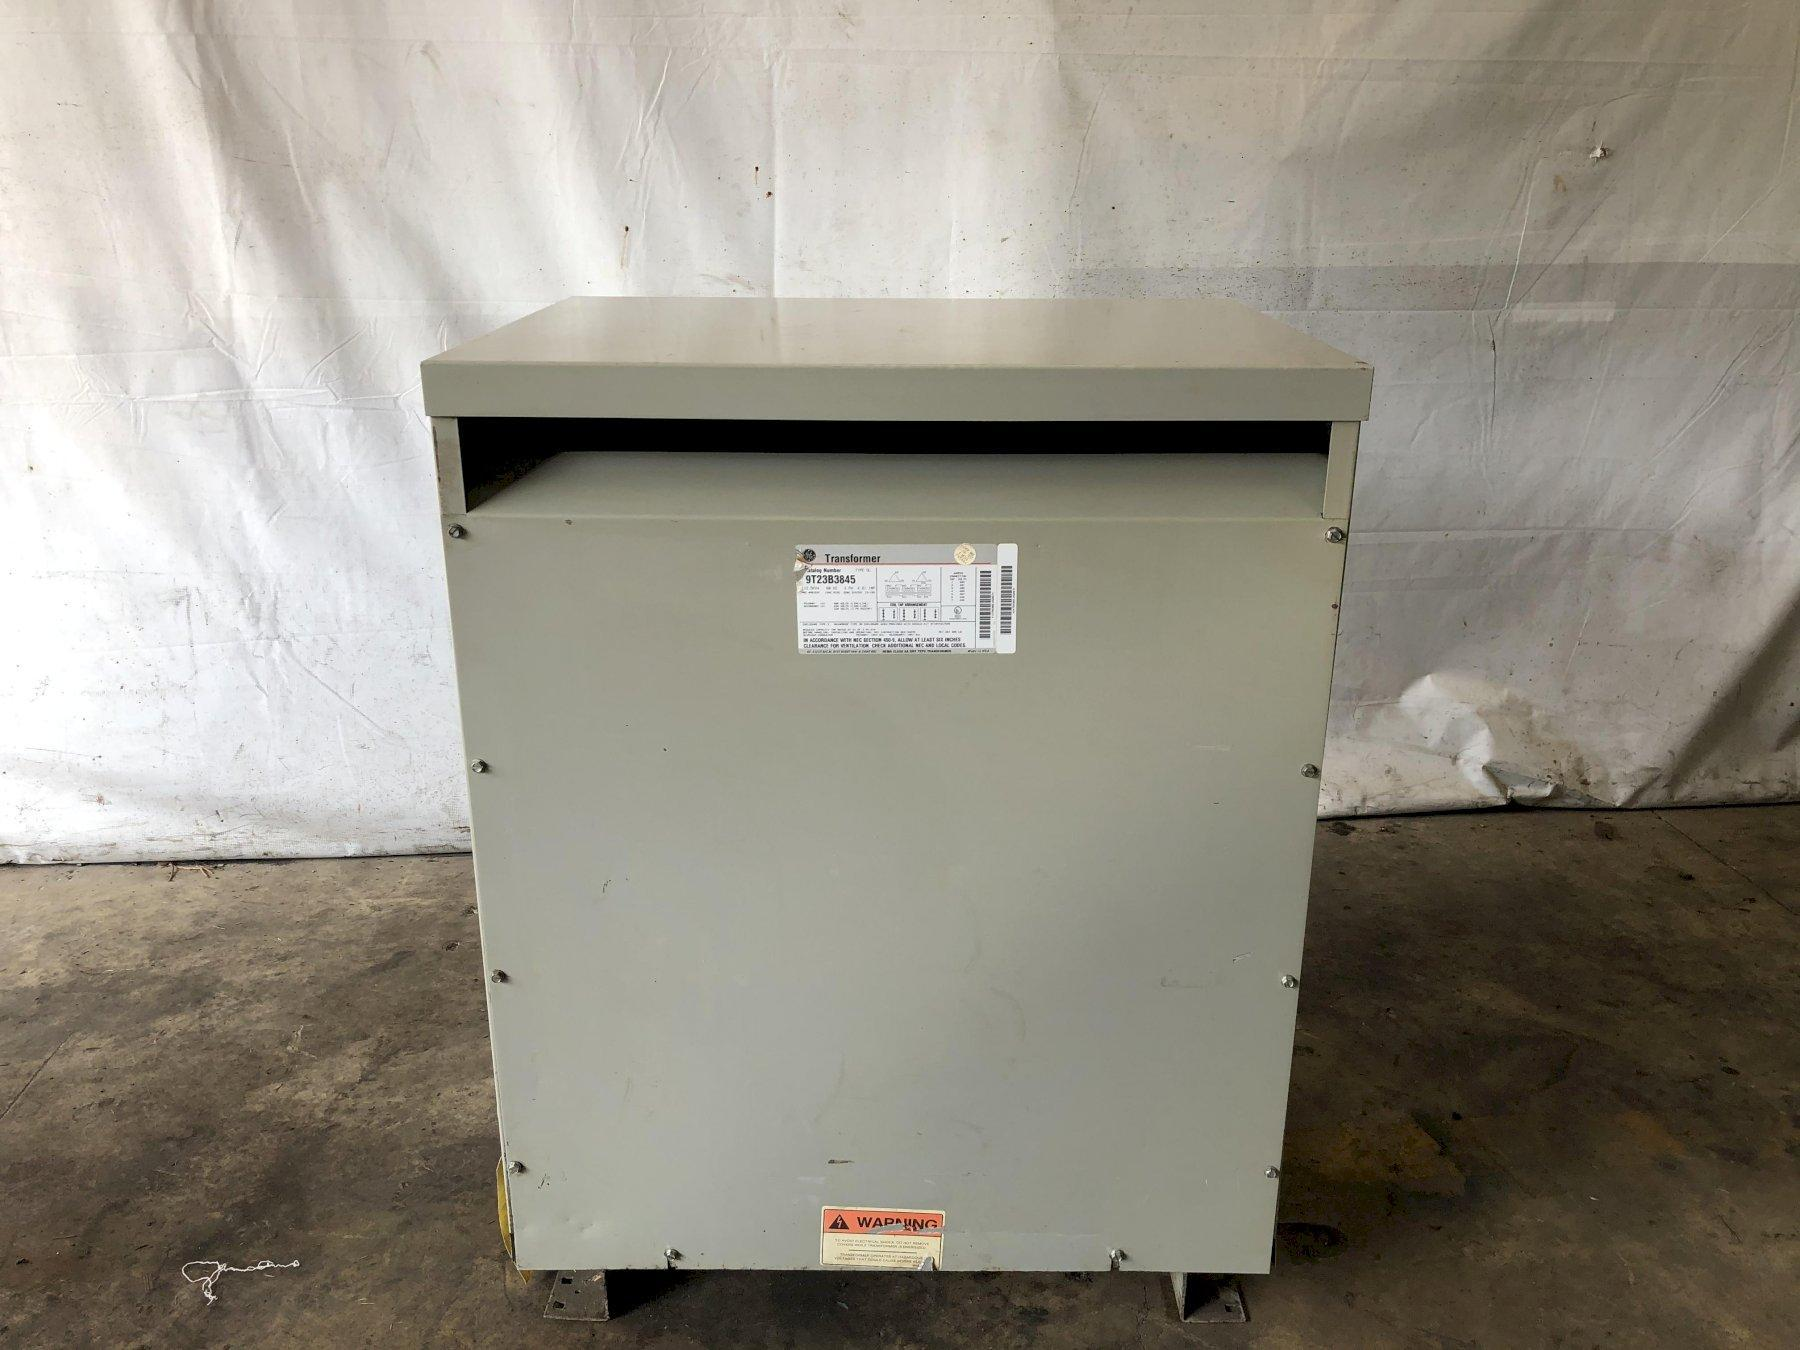 112.5 KVA 480 TO 240 VOLT 3 PHASE ELECTRICAL POWER TRANSFORMER: STOCK #13765